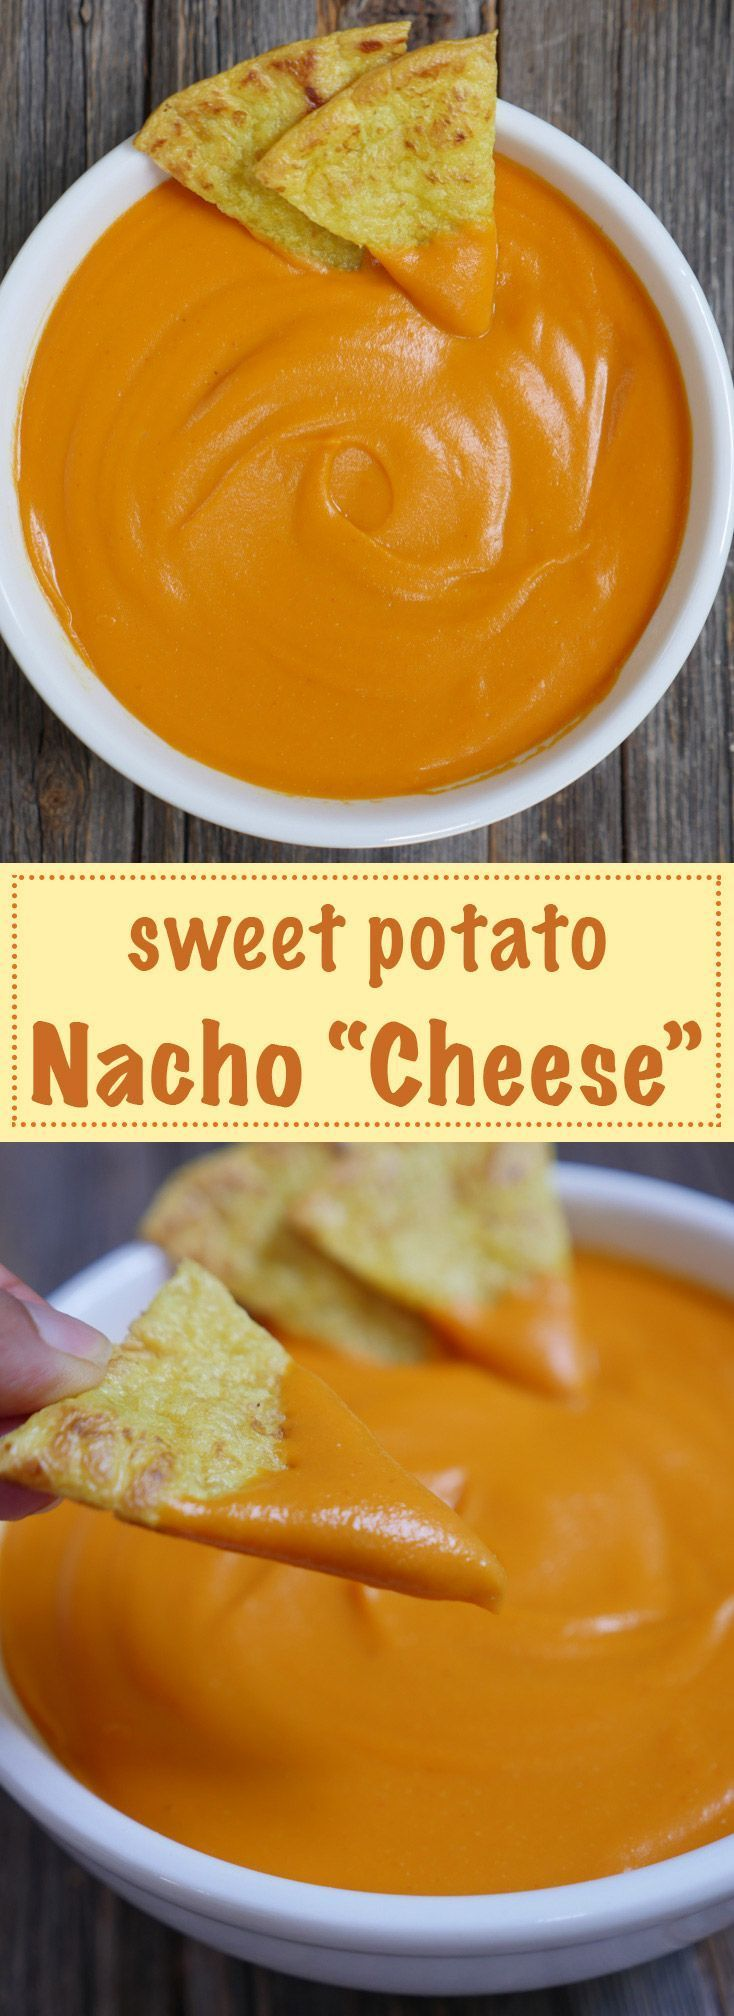 "Sweet Potato Nacho ""Cheese"" is dairy-free, paleo, vegan and allergy-friendly. Recipe by http://MyHeartBeets.com"